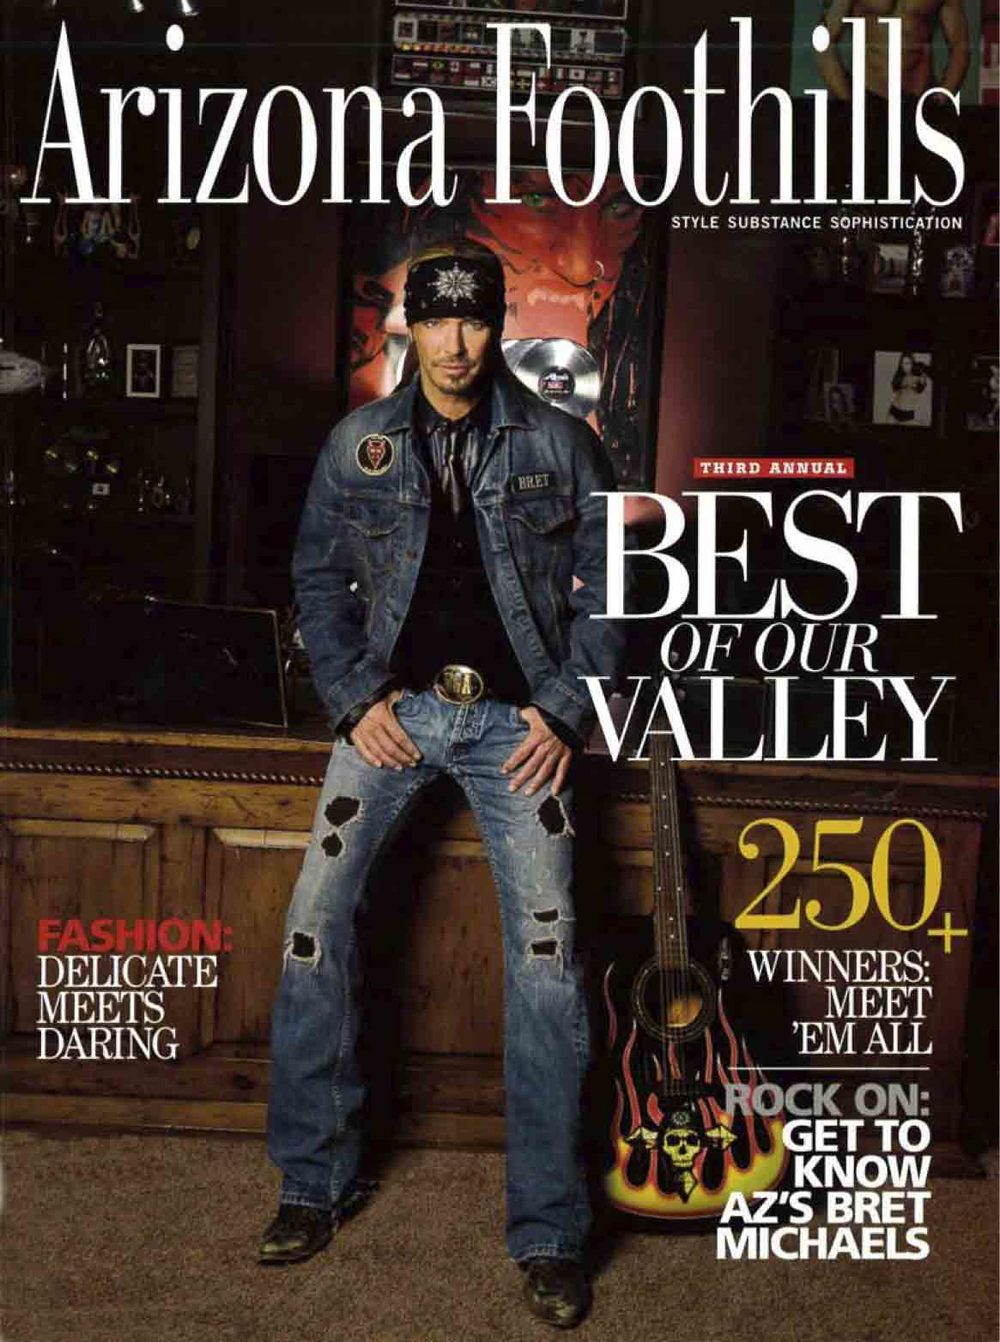 1 3rd Annual Best of our Valley Cover copy 72.jpg